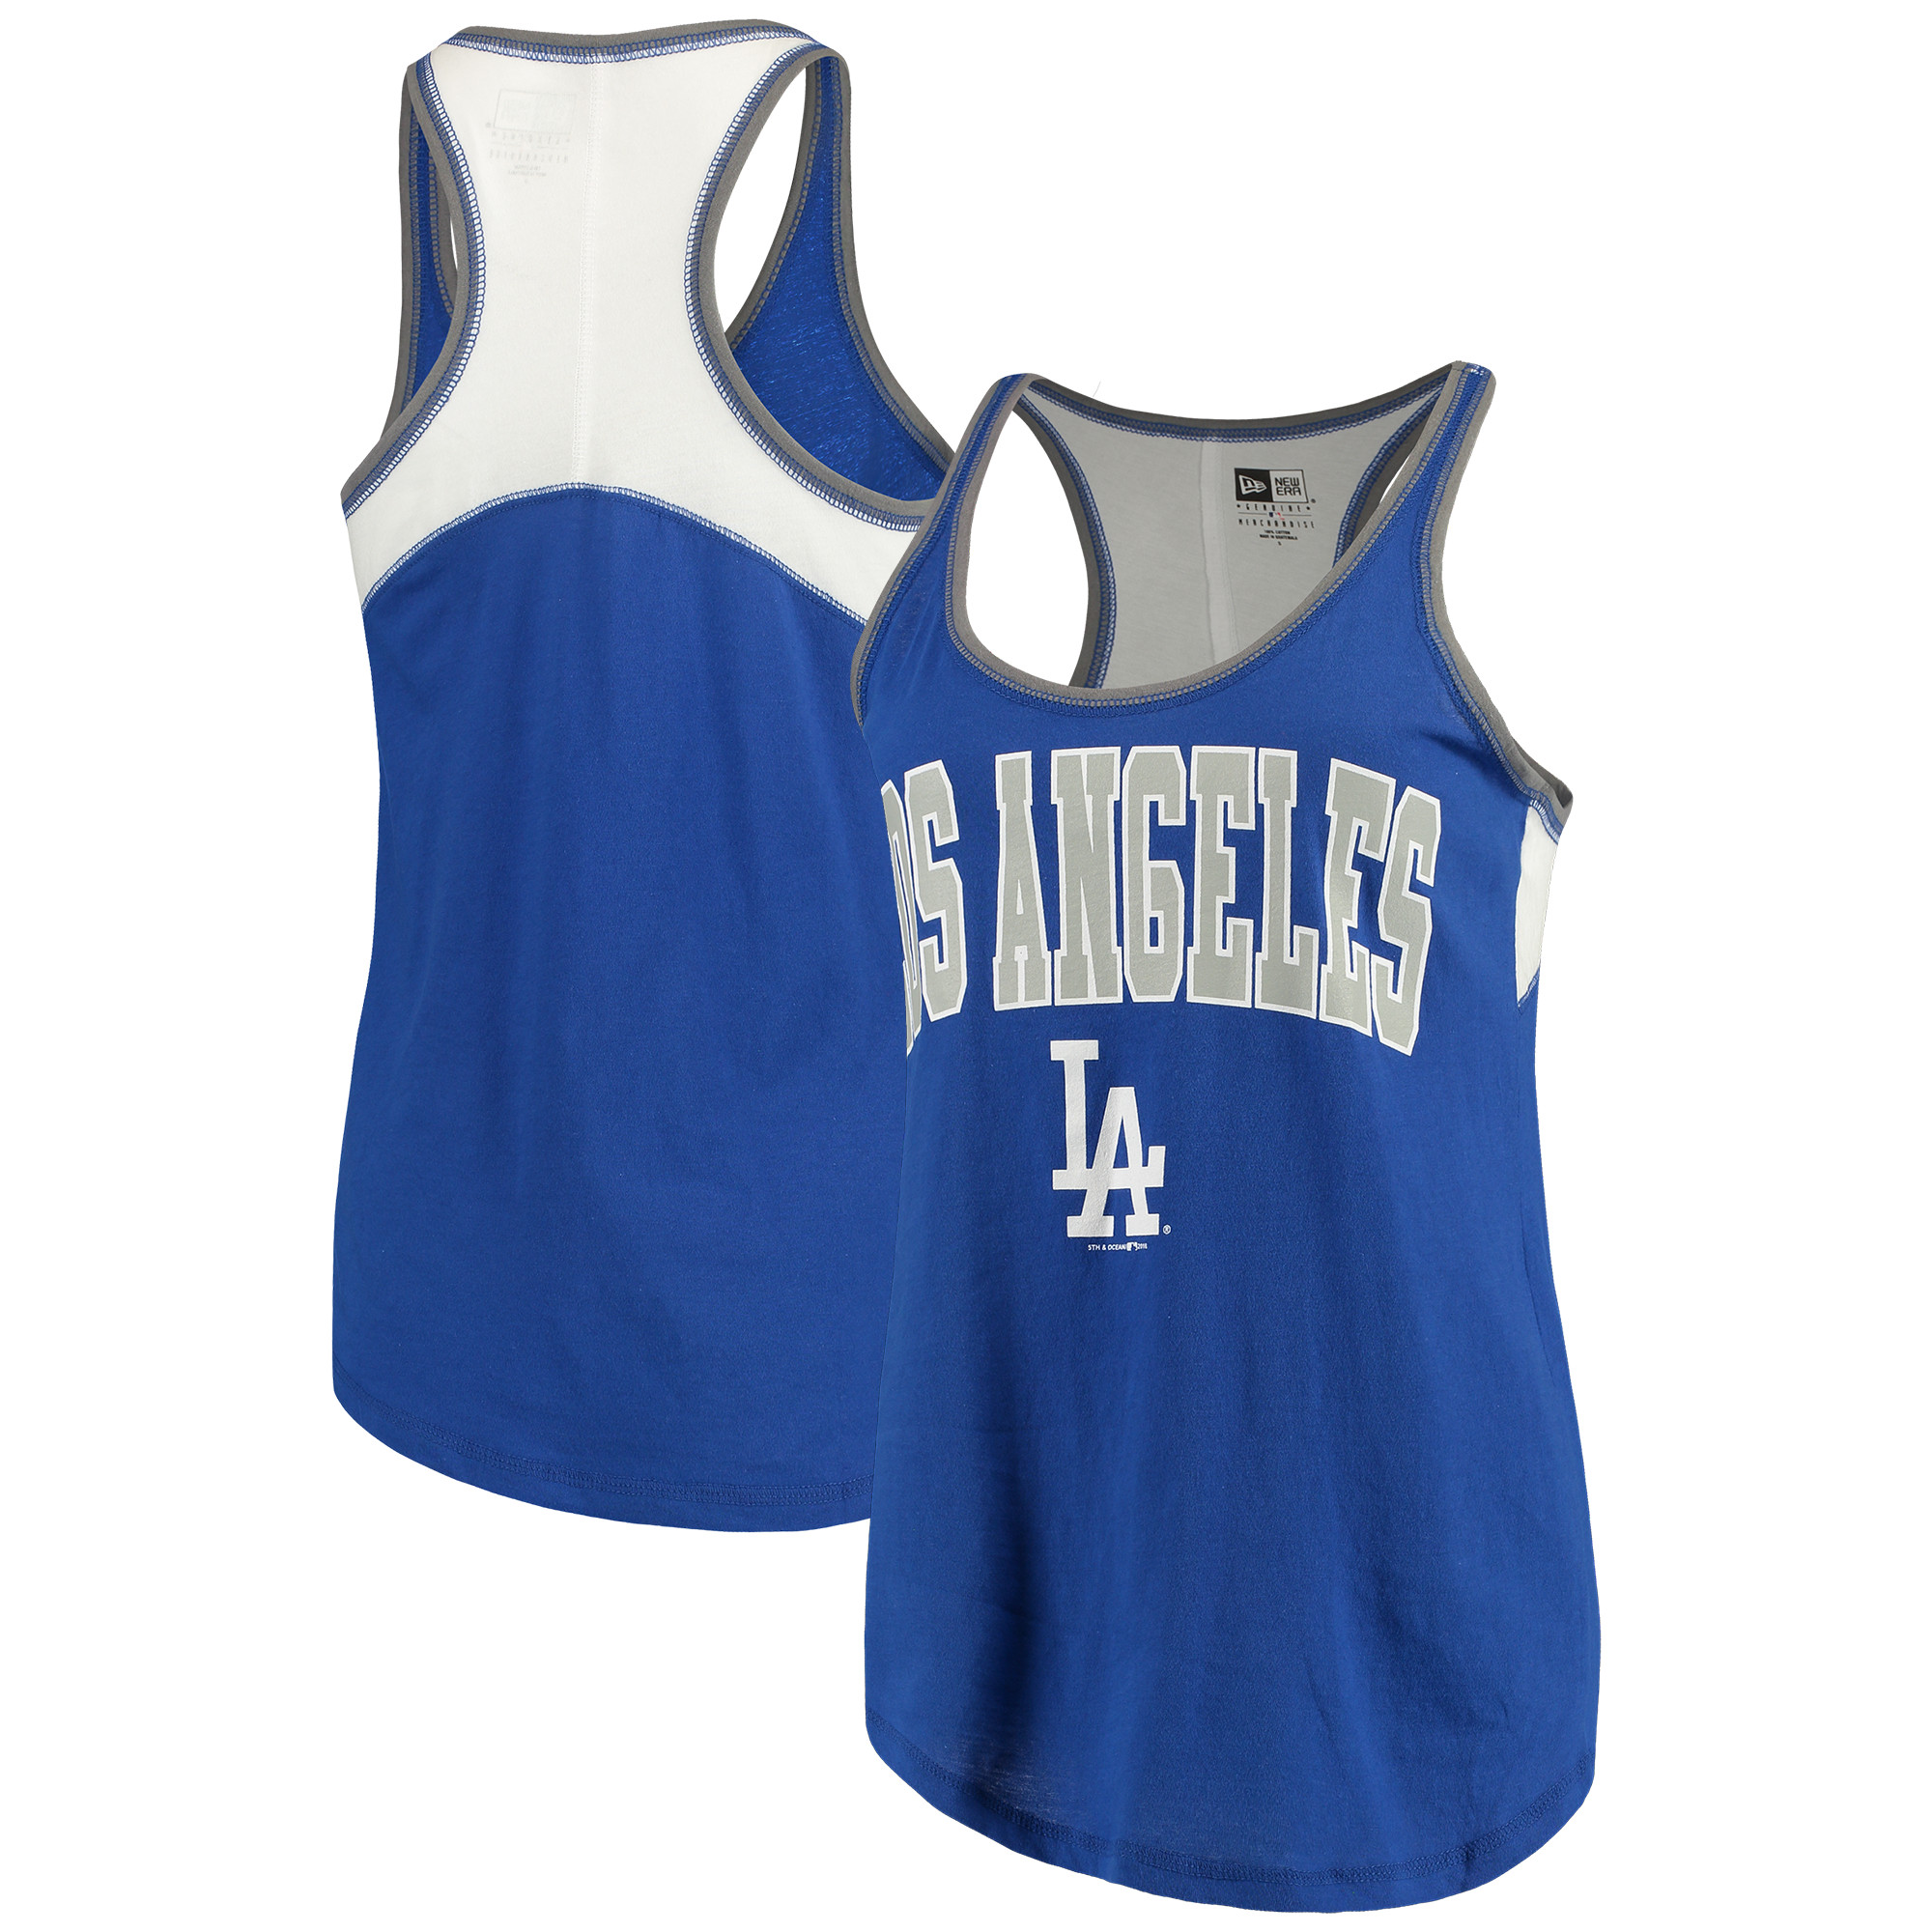 Los Angeles Dodgers 5th & Ocean by New Era Women's Baby Jersey Racerback Tank Top - Royal